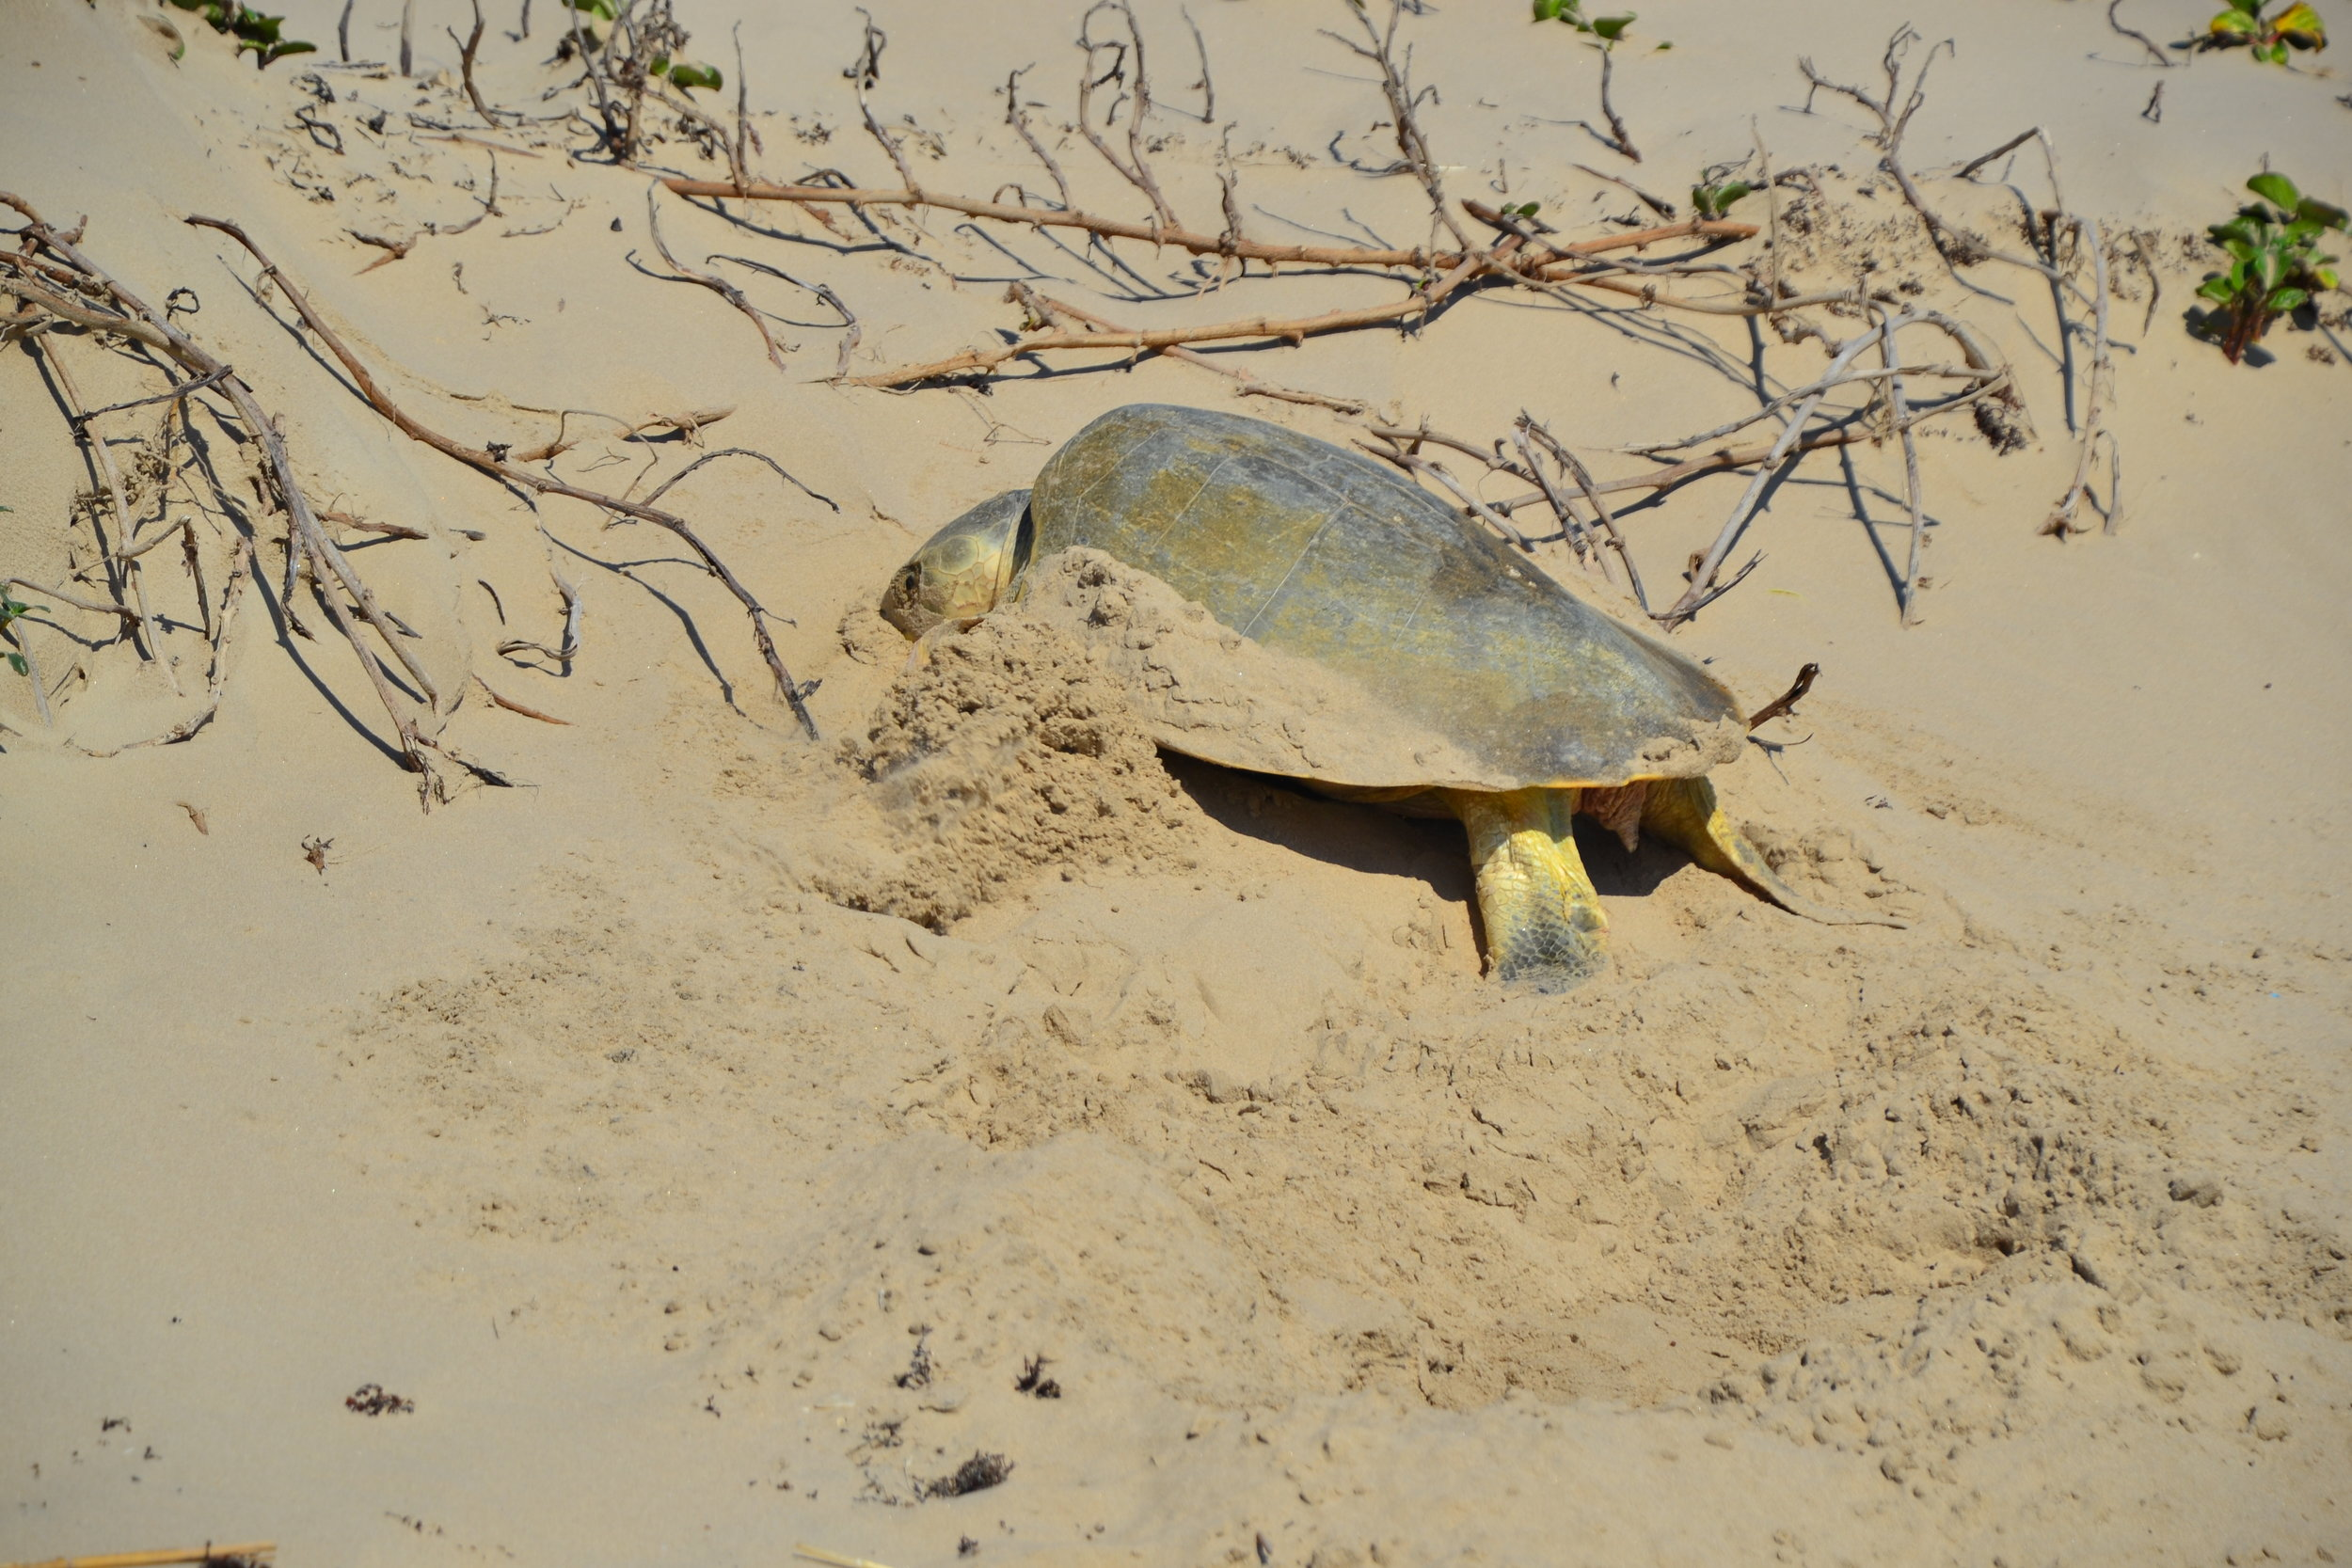 Finding an endangered Kemp's Ridley sea turtle and reporting it right away to the Turtle Science patrollers!